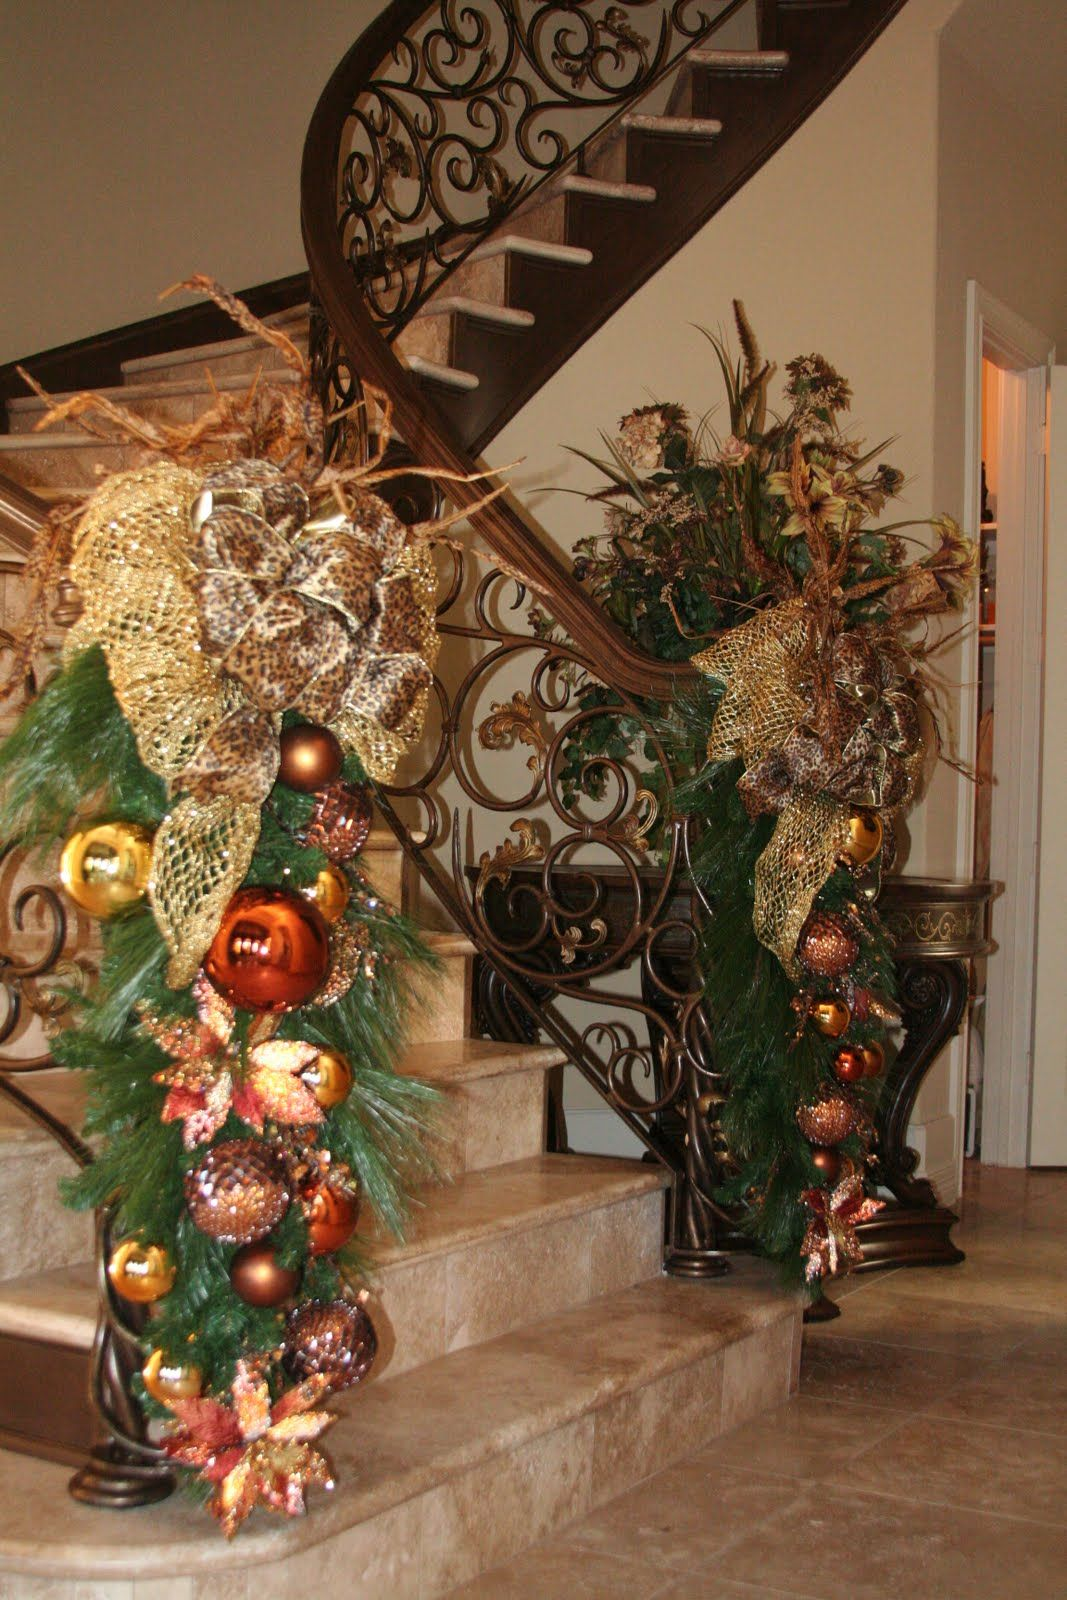 Christmas Decorations Staircase Banister | Stairway ...